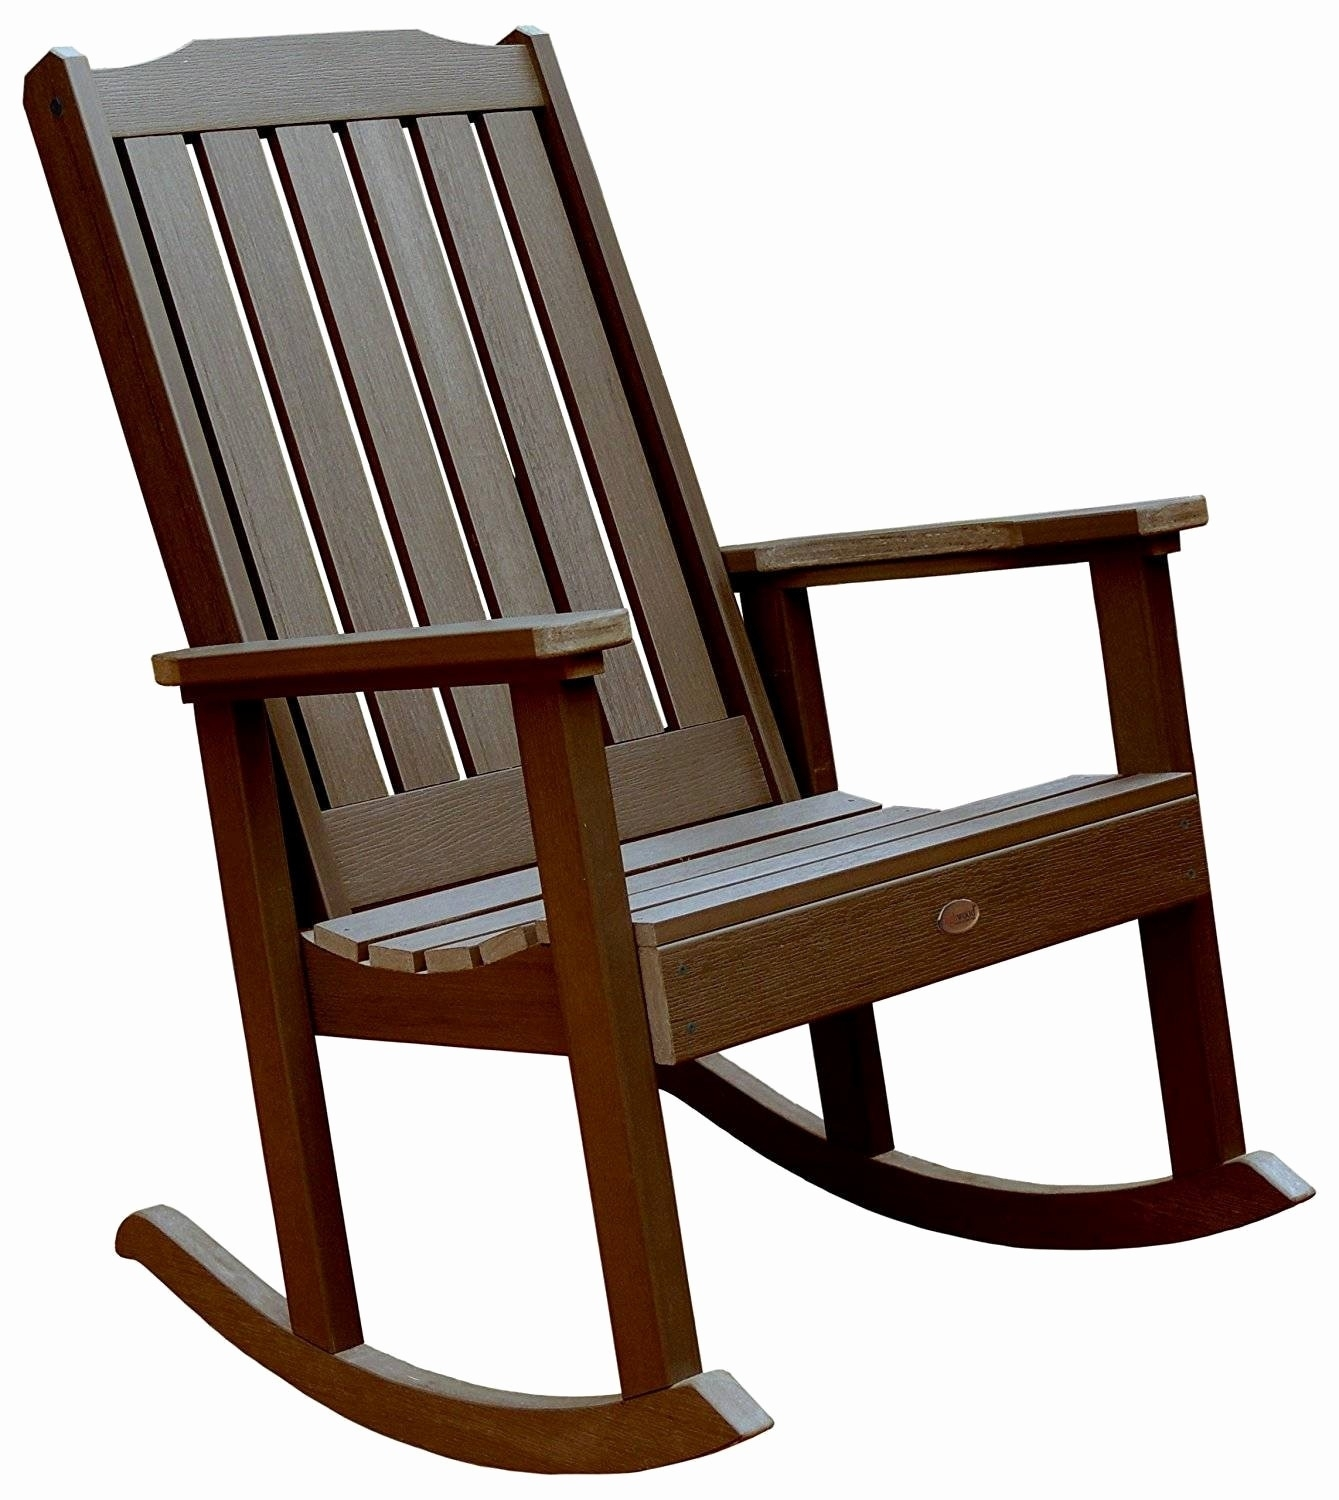 Outdoor Patio Rocking Chairs Awesome Ideas For Chair And Ottoman Set In Wicker Rocking Chairs And Ottoman (#10 of 15)